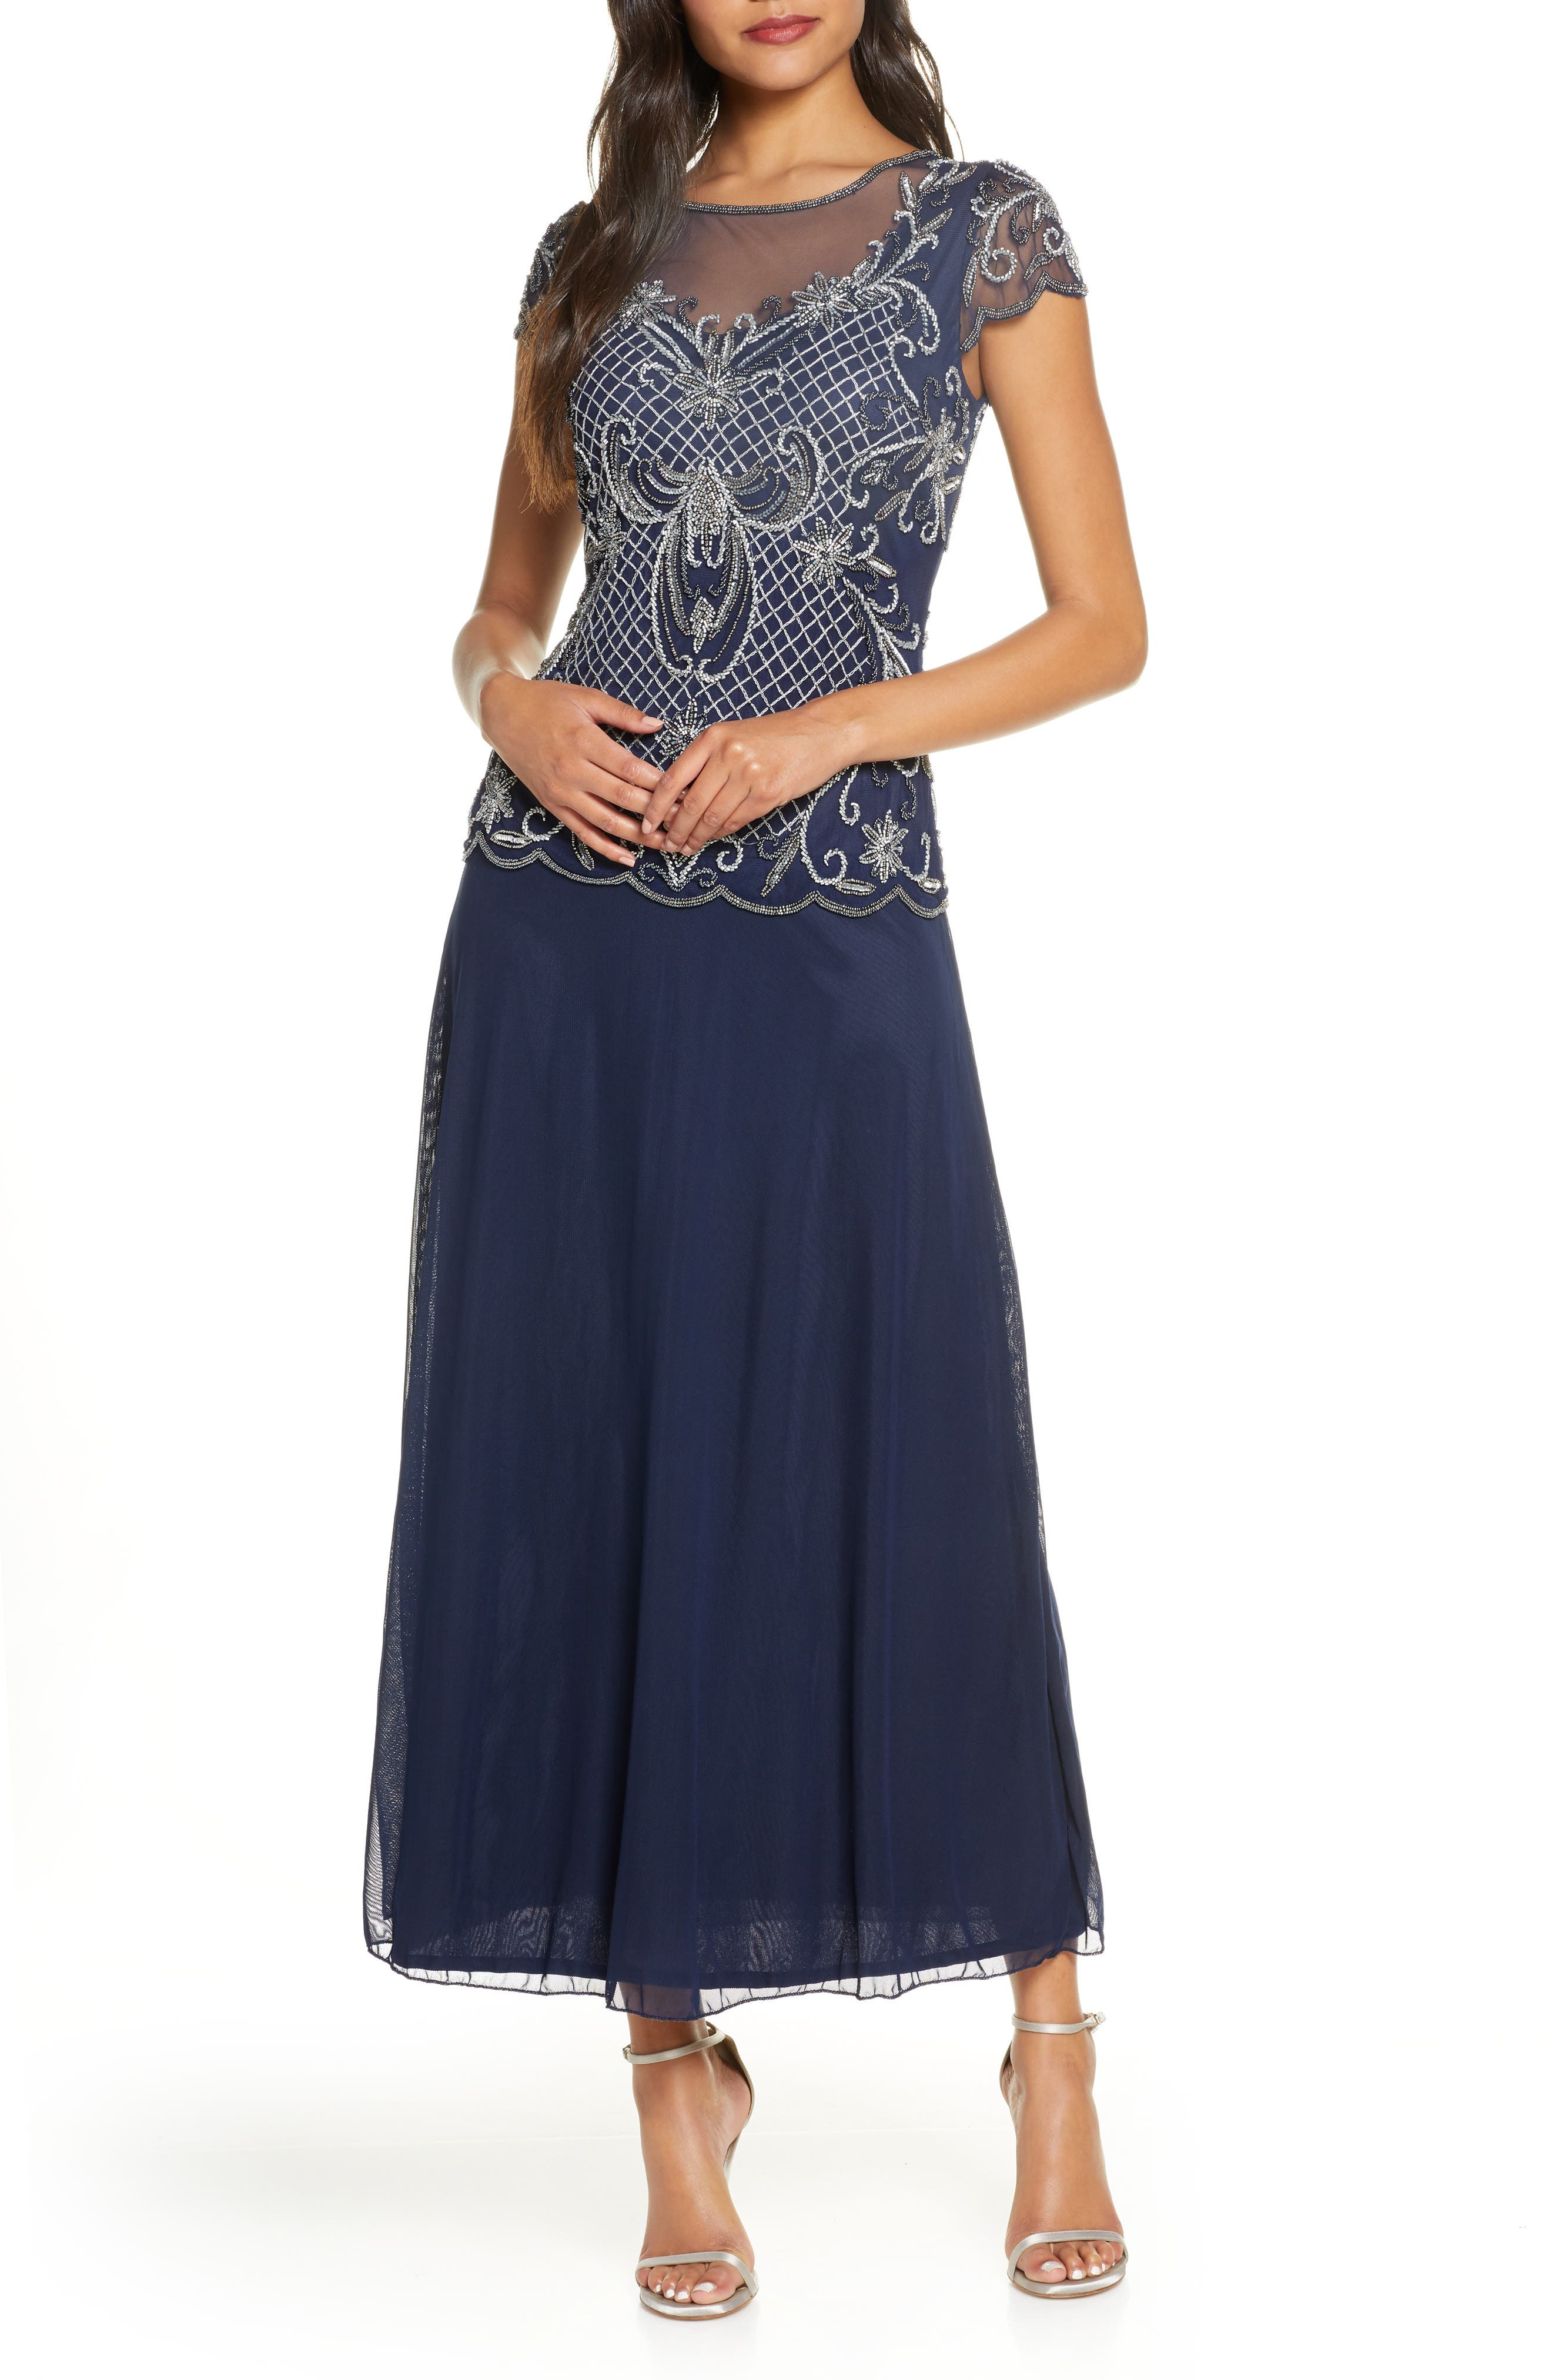 Vintage 1920s Dresses – Where to Buy Womens Pisarro Nights Mock Two-Piece Beaded Bodice Evening Dress Size 14 - Blue $198.00 AT vintagedancer.com